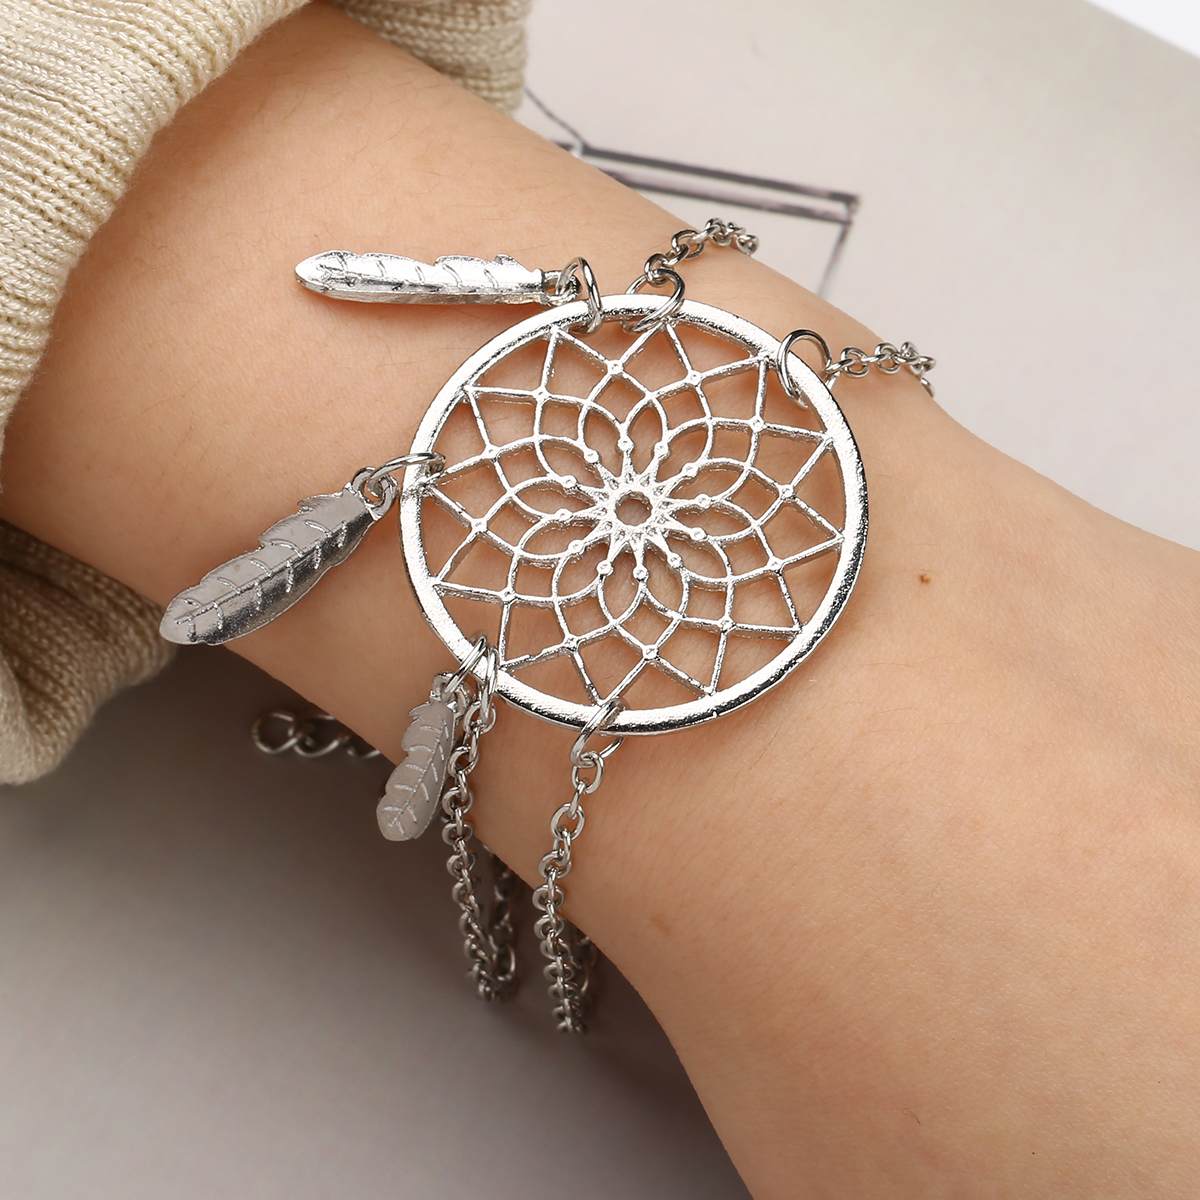 Sainio Silver Color Dreamcatcher Charm Bracelets For Women Charm Bracelets & Bangles Dream Catcher Jewelry Gift for Girl